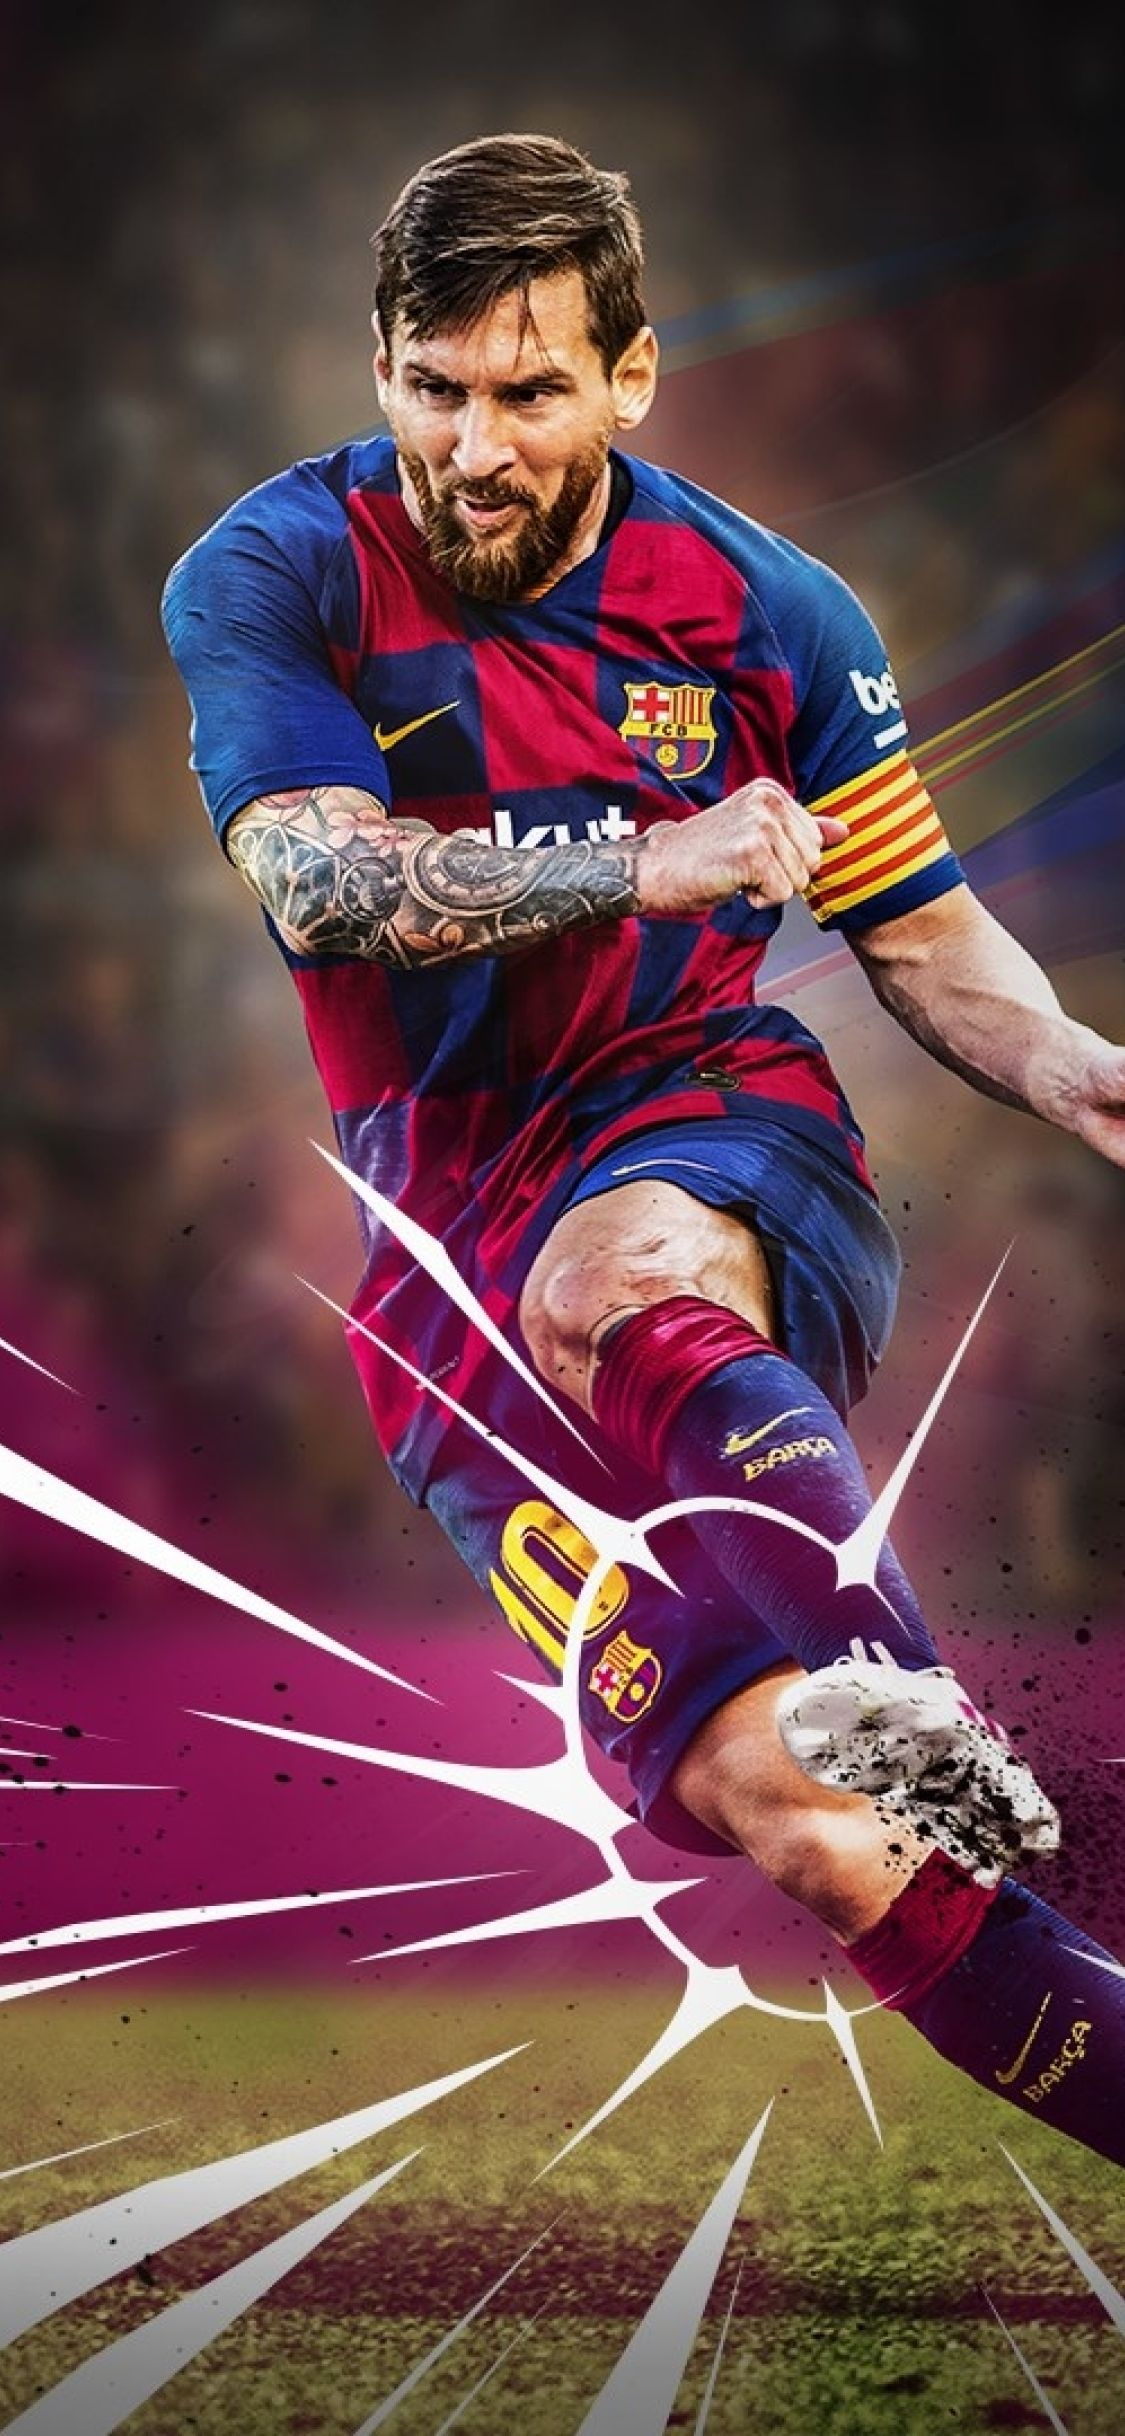 Messi 2020 Wallpapers   Top Messi 2020 Backgrounds 1125x2436